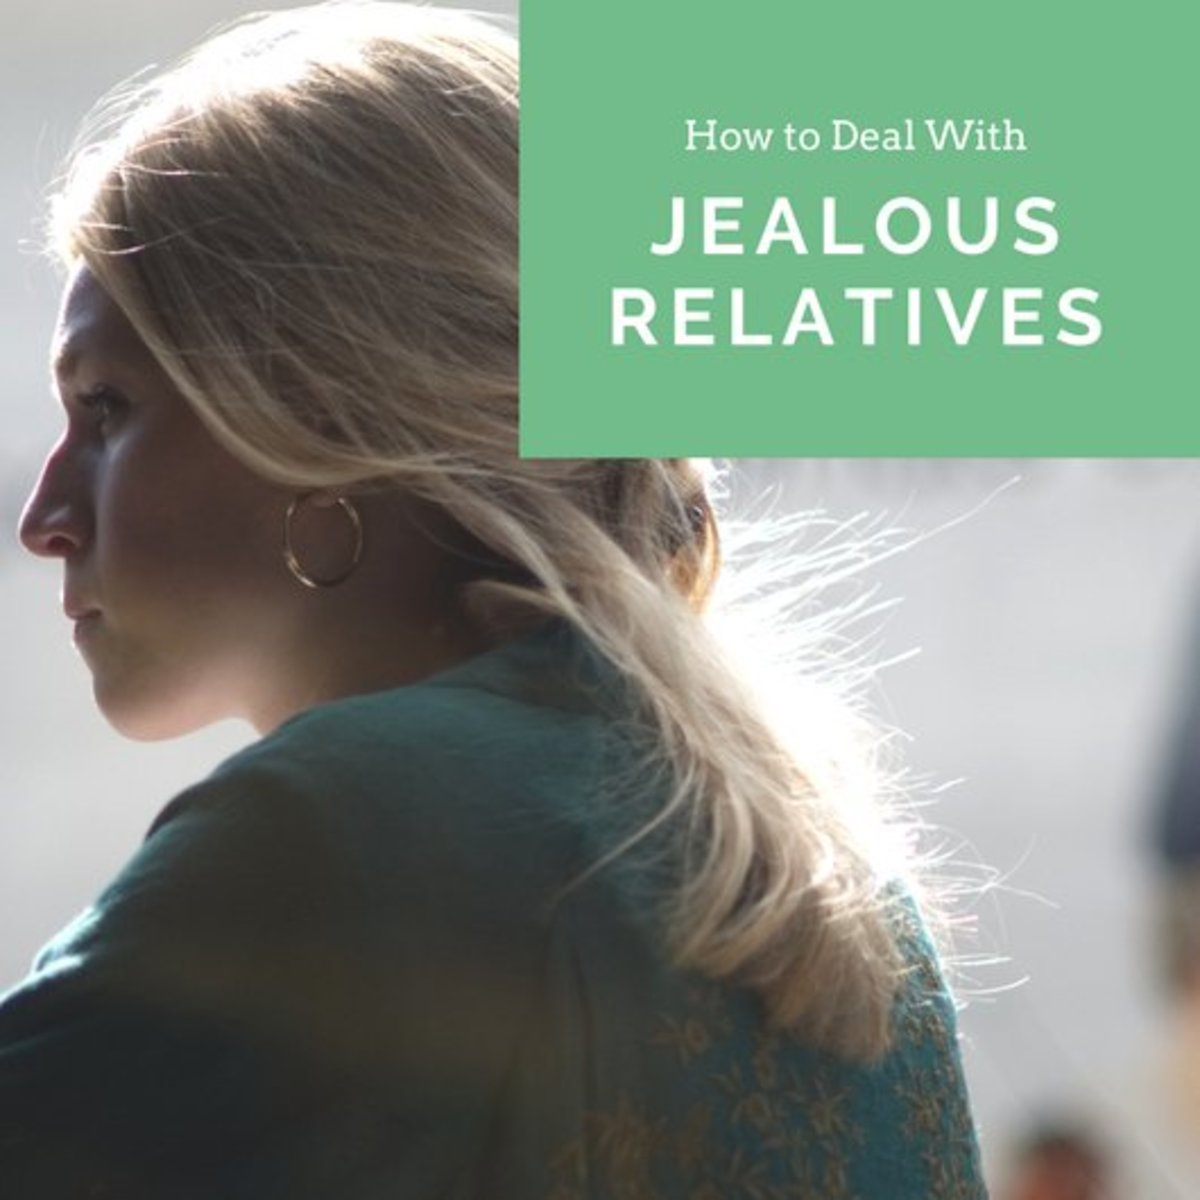 Signs Of Jealous Family Members And How To Deal With Them Wehavekids Family